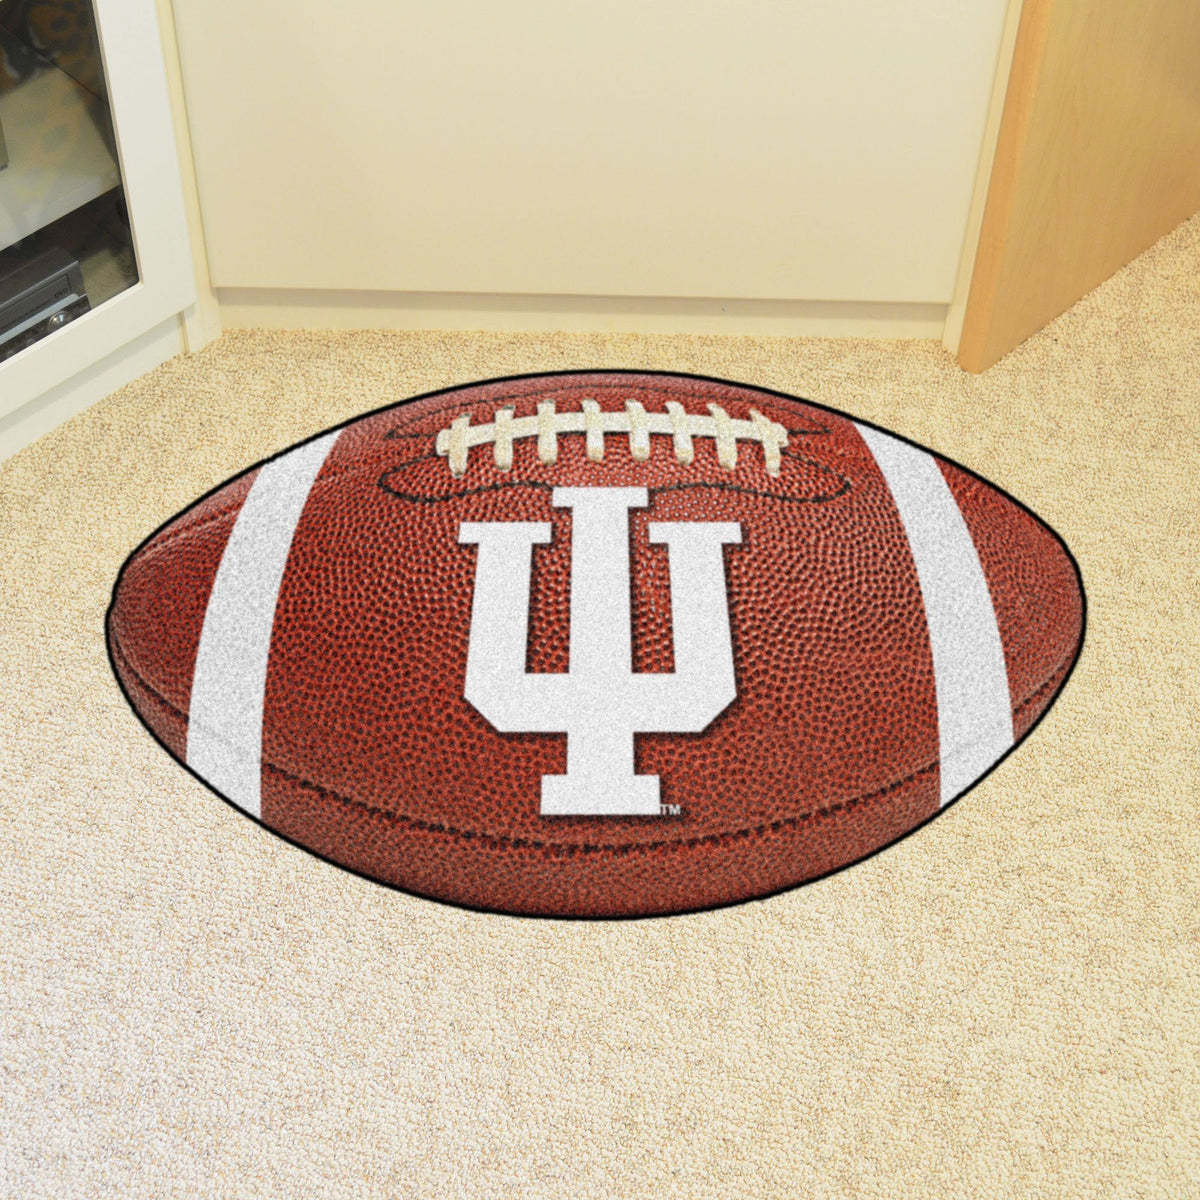 Collegiate - Football Mat: A - K Collegiate Mats, Rectangular Mats, Football Mat, Collegiate, Home Fan Mats Indiana